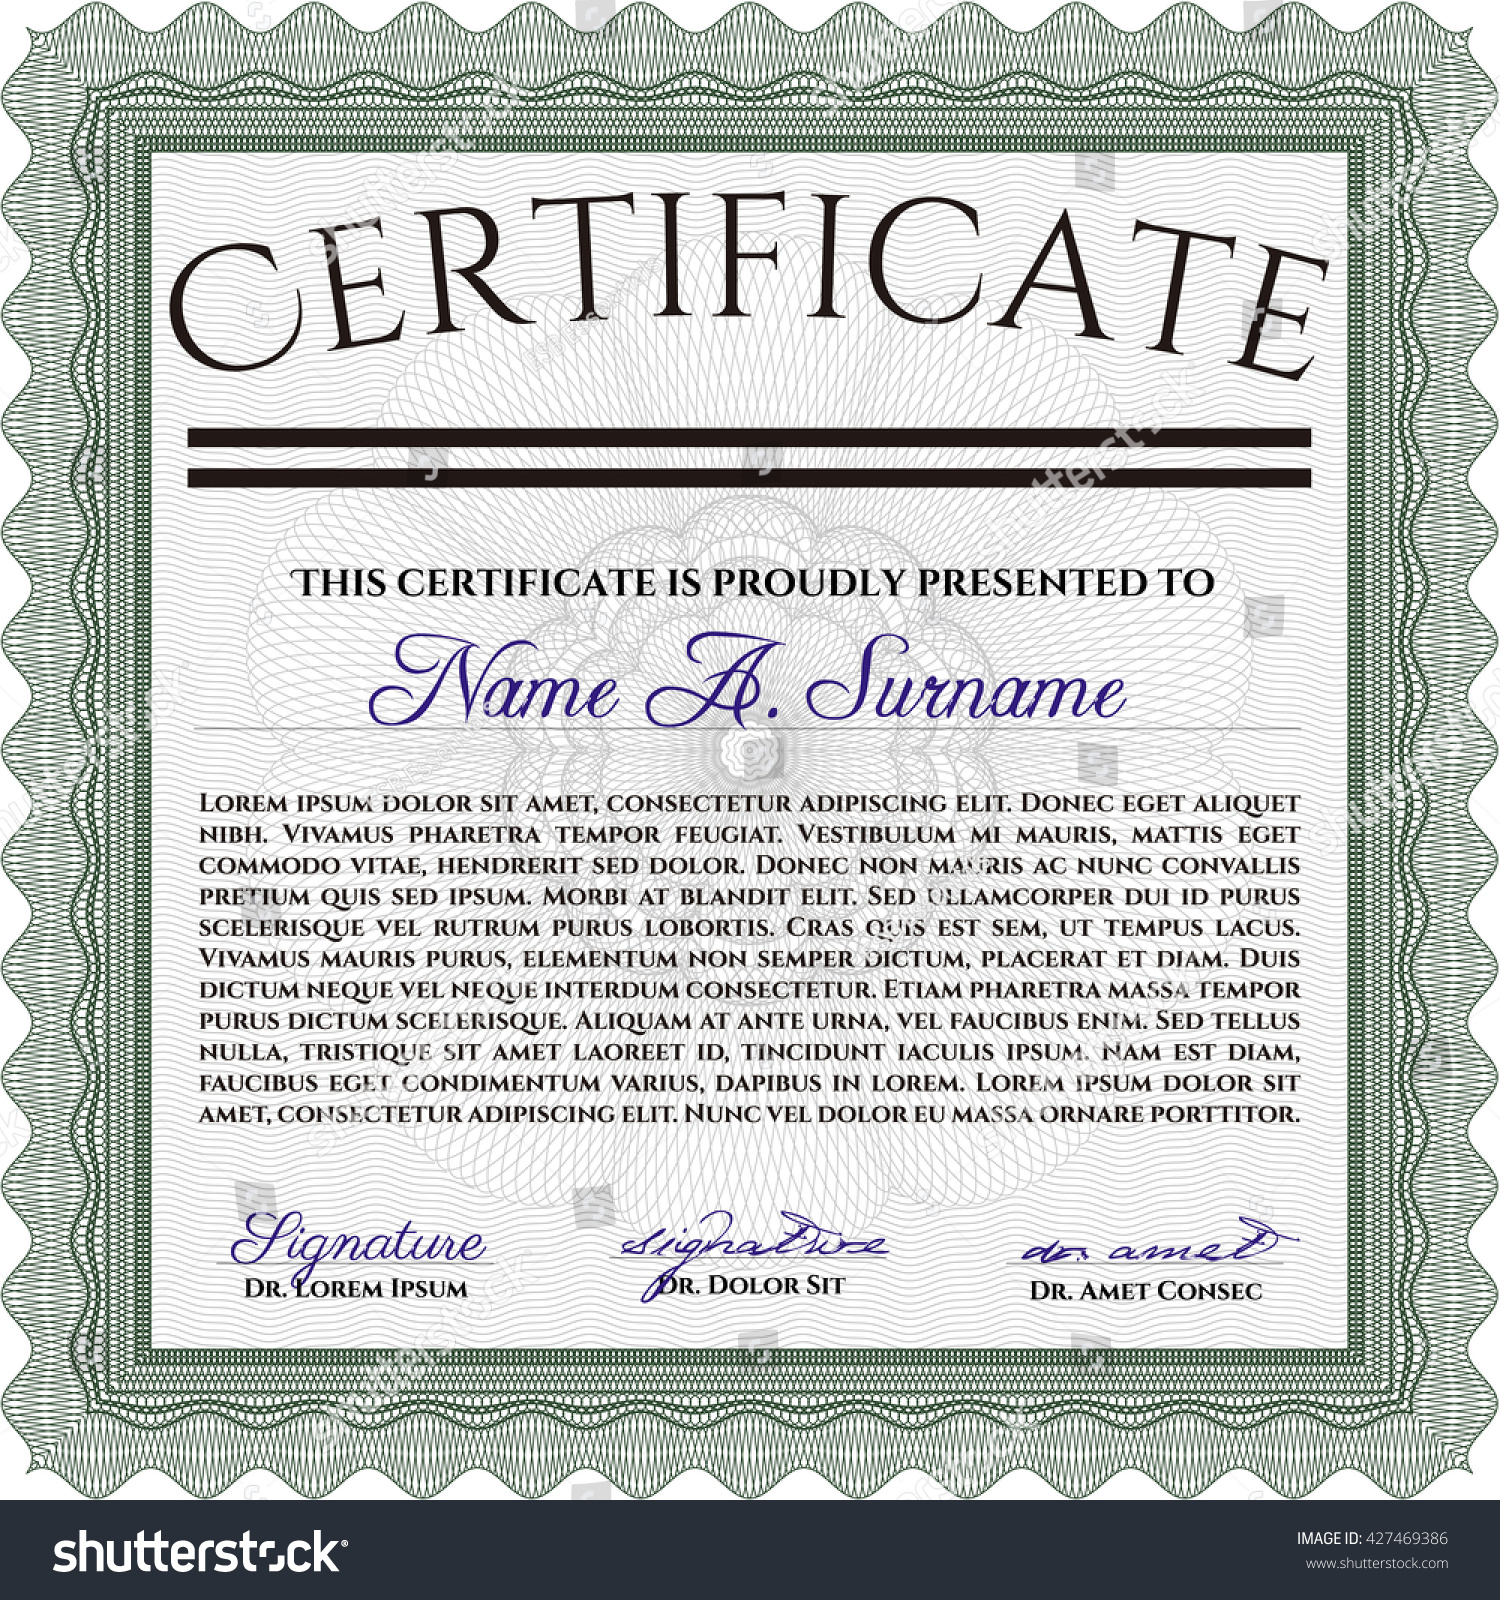 Green certificate template easy print customizable stock vector green certificate template easy to print customizable easy to edit and change colors xflitez Images